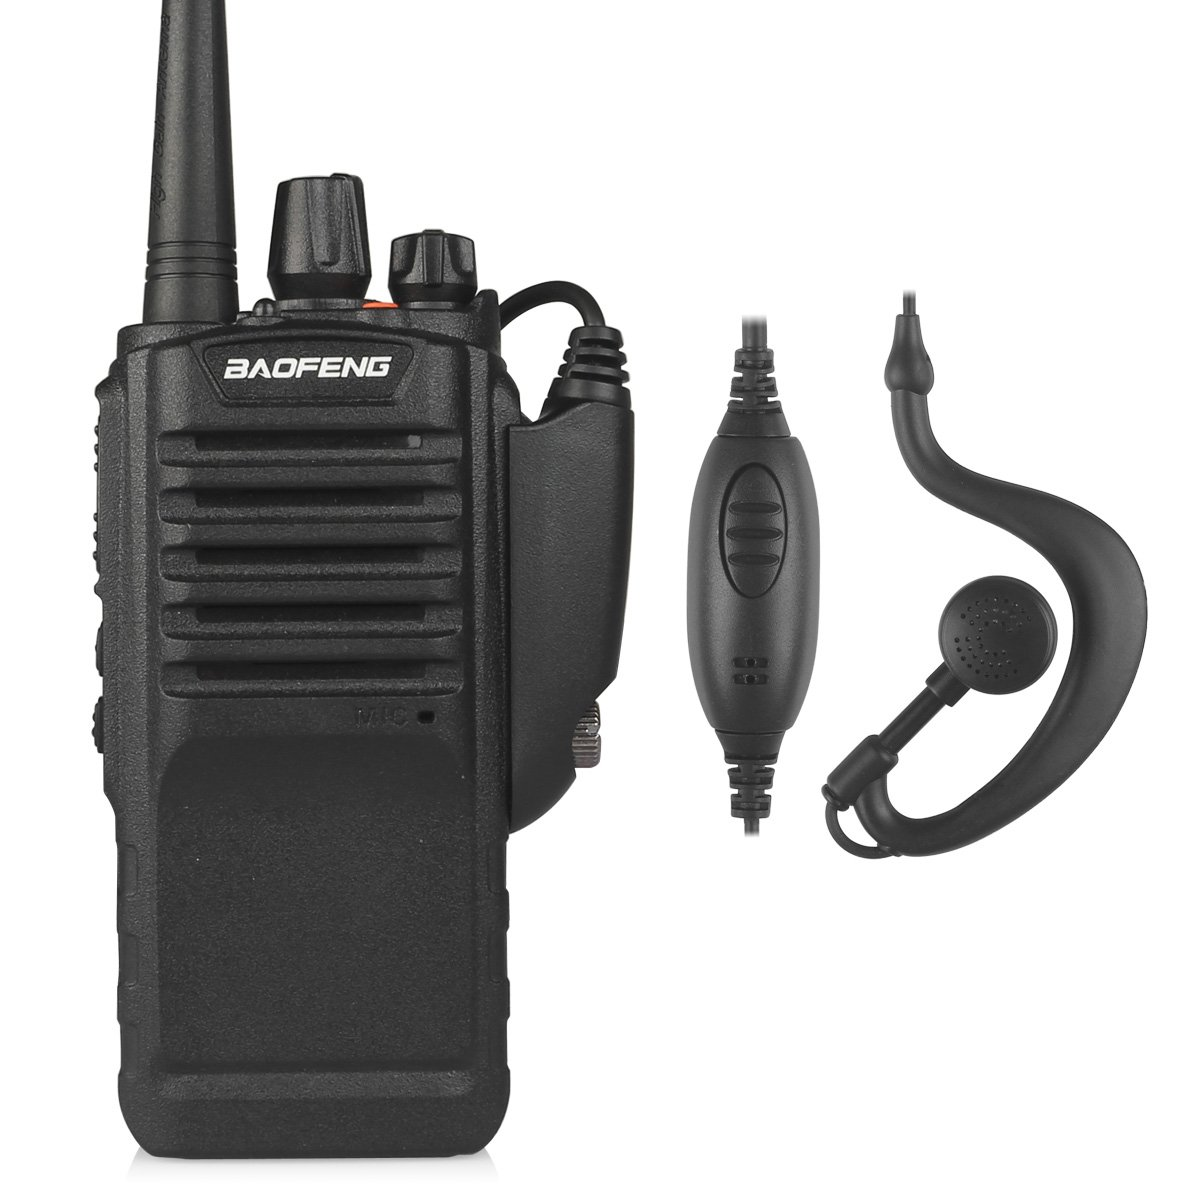 BaoFeng PoFung BF-9700 Dual Band Two-way Radio, IP67 Walkie Talkie Transceiver with High Gain Antenna, 2800mAh battery, 1 Programming Cable, Black